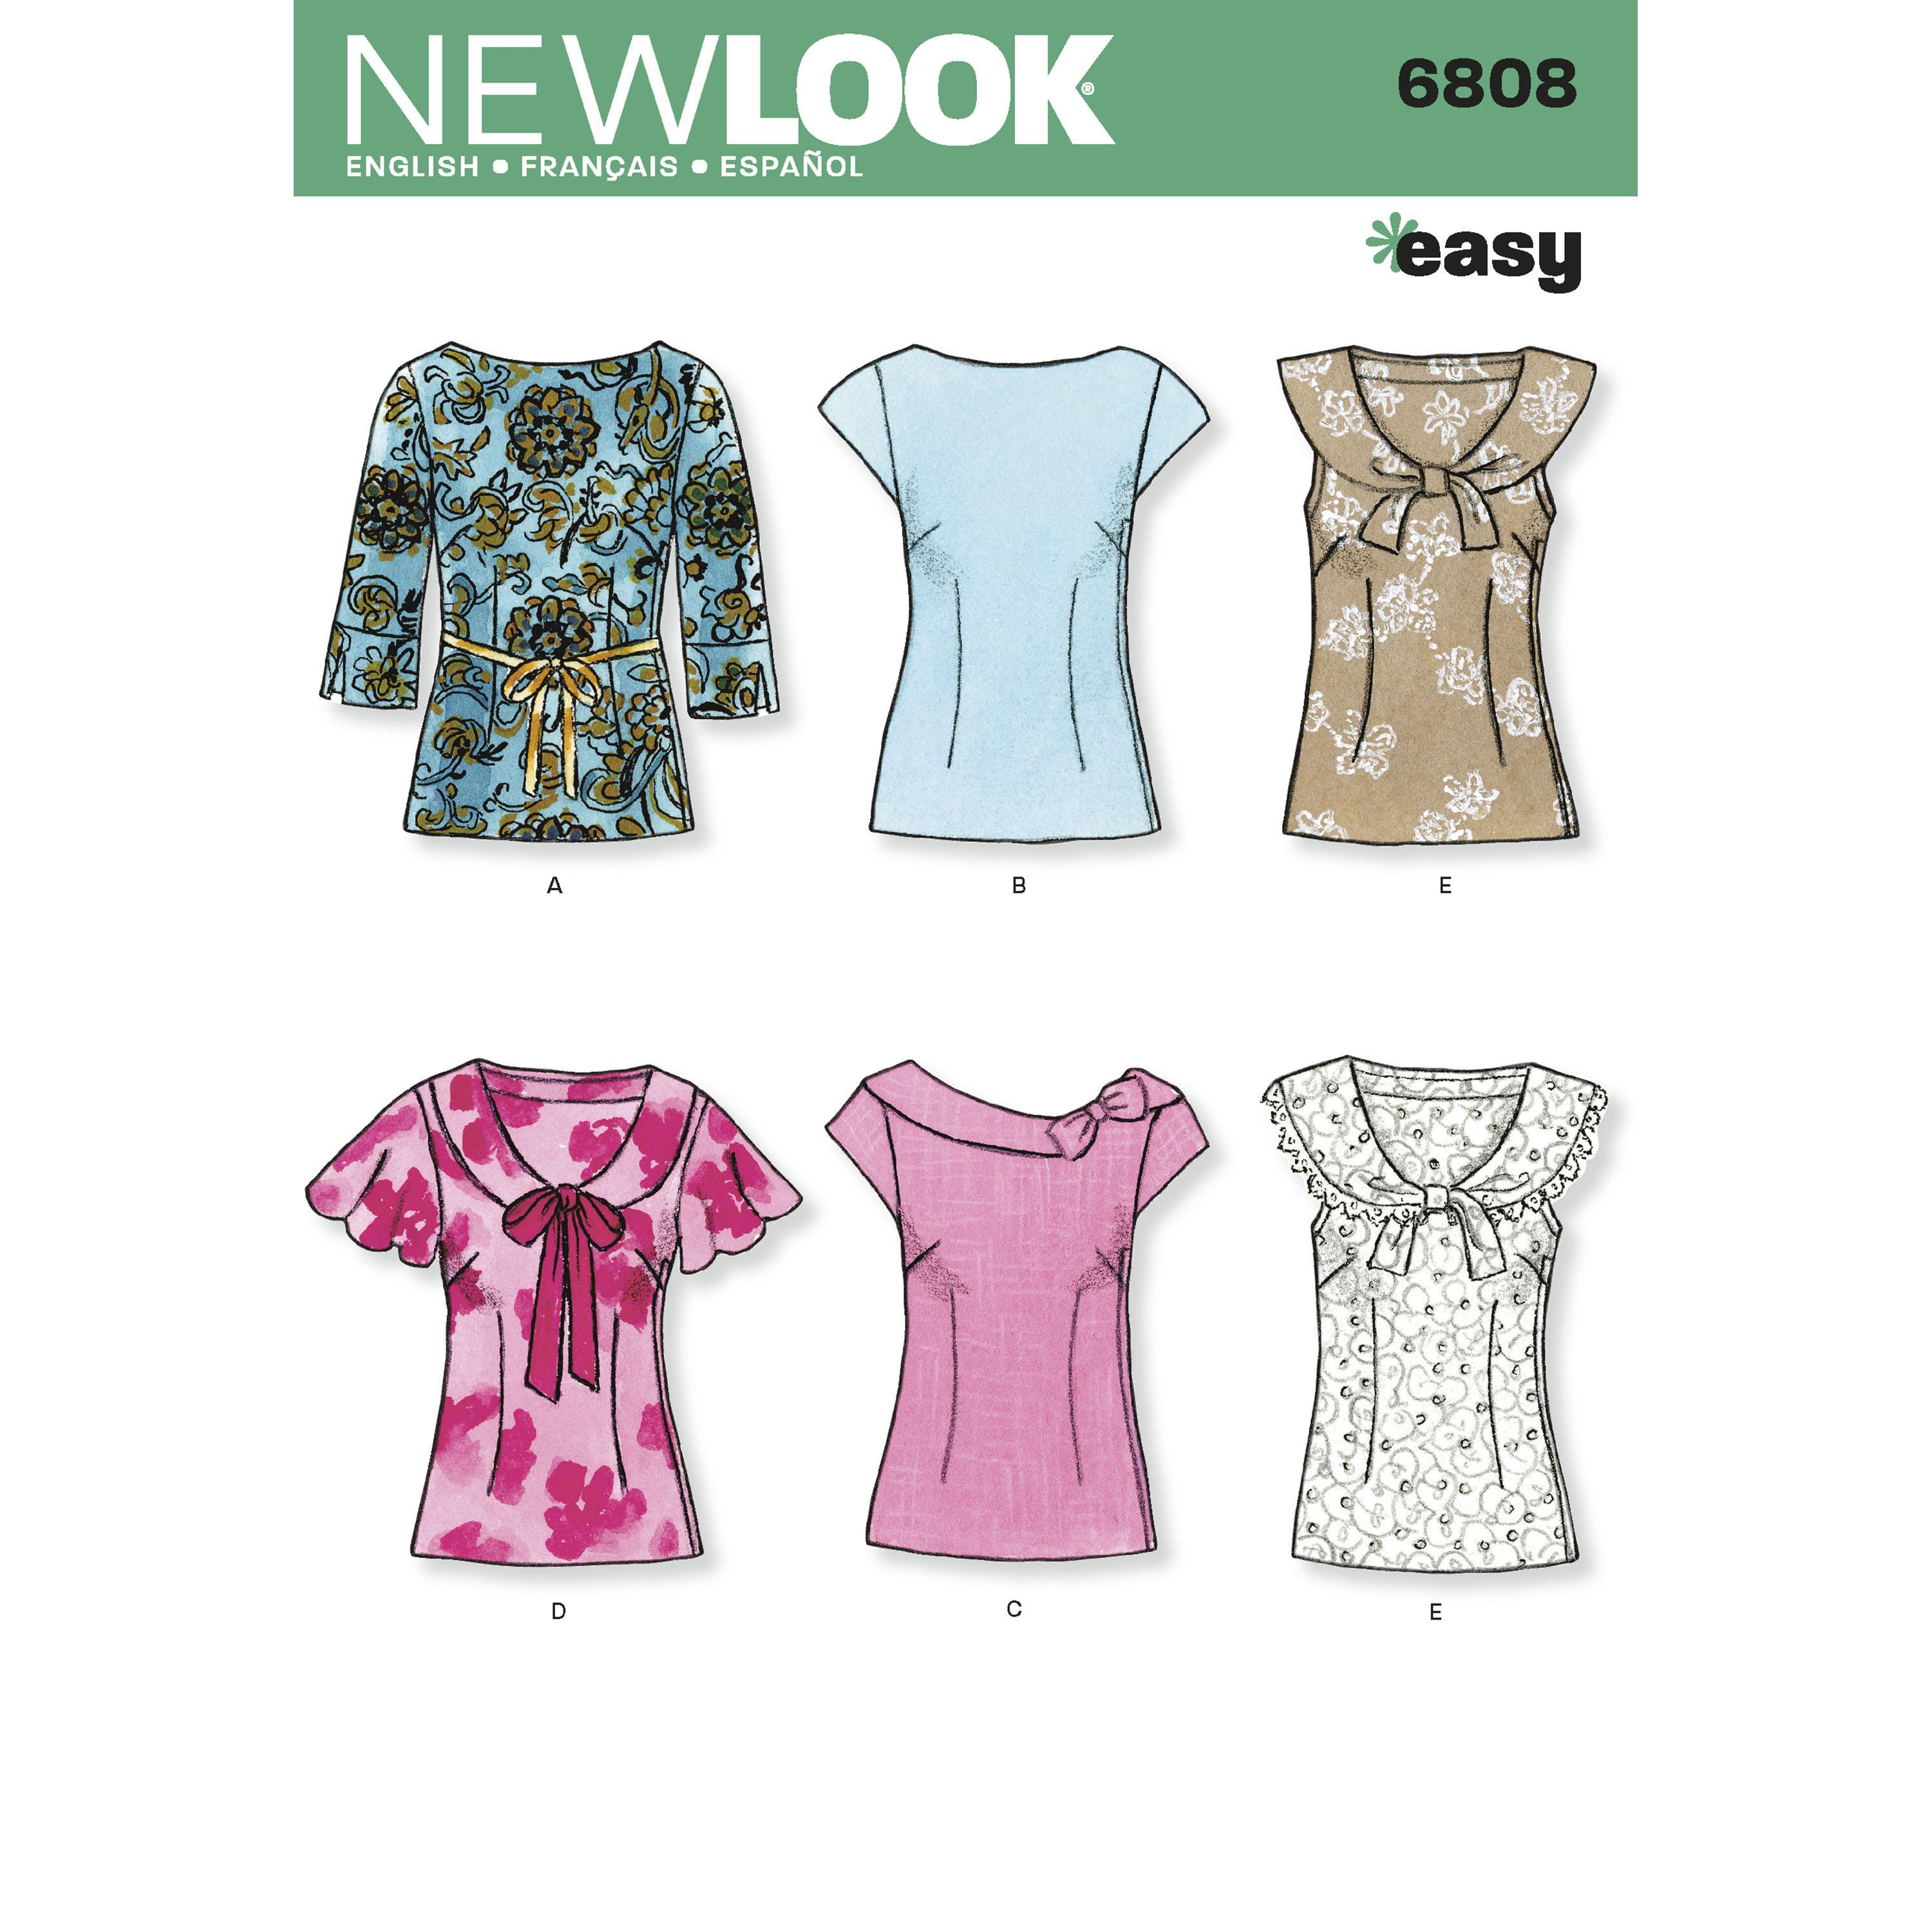 NewLook N6808 Misses Tops